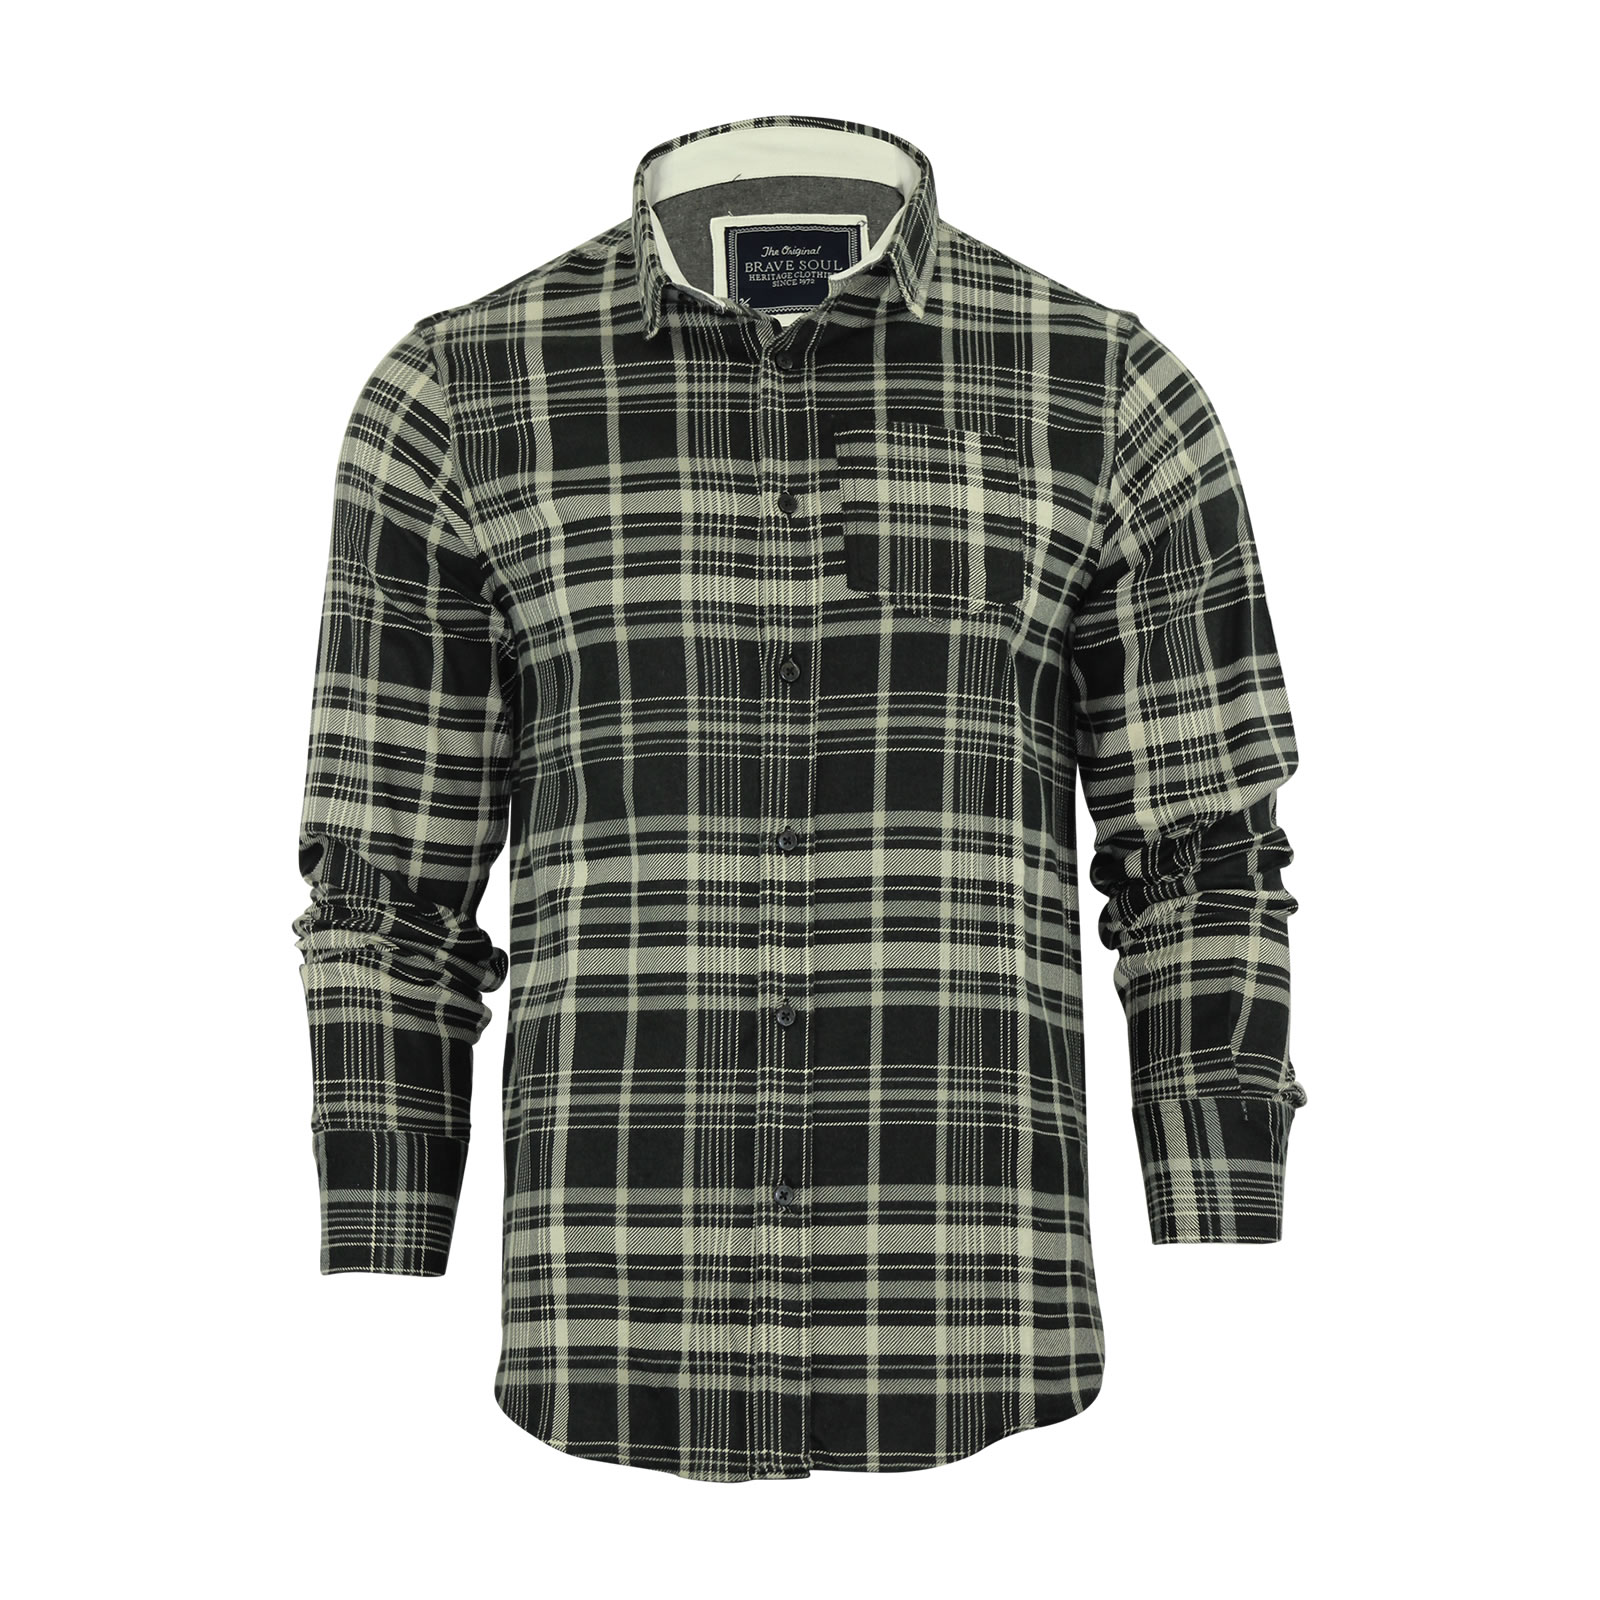 Mens Check Shirt Brave Soul Flannel Brushed Cotton Long Sleeve ...